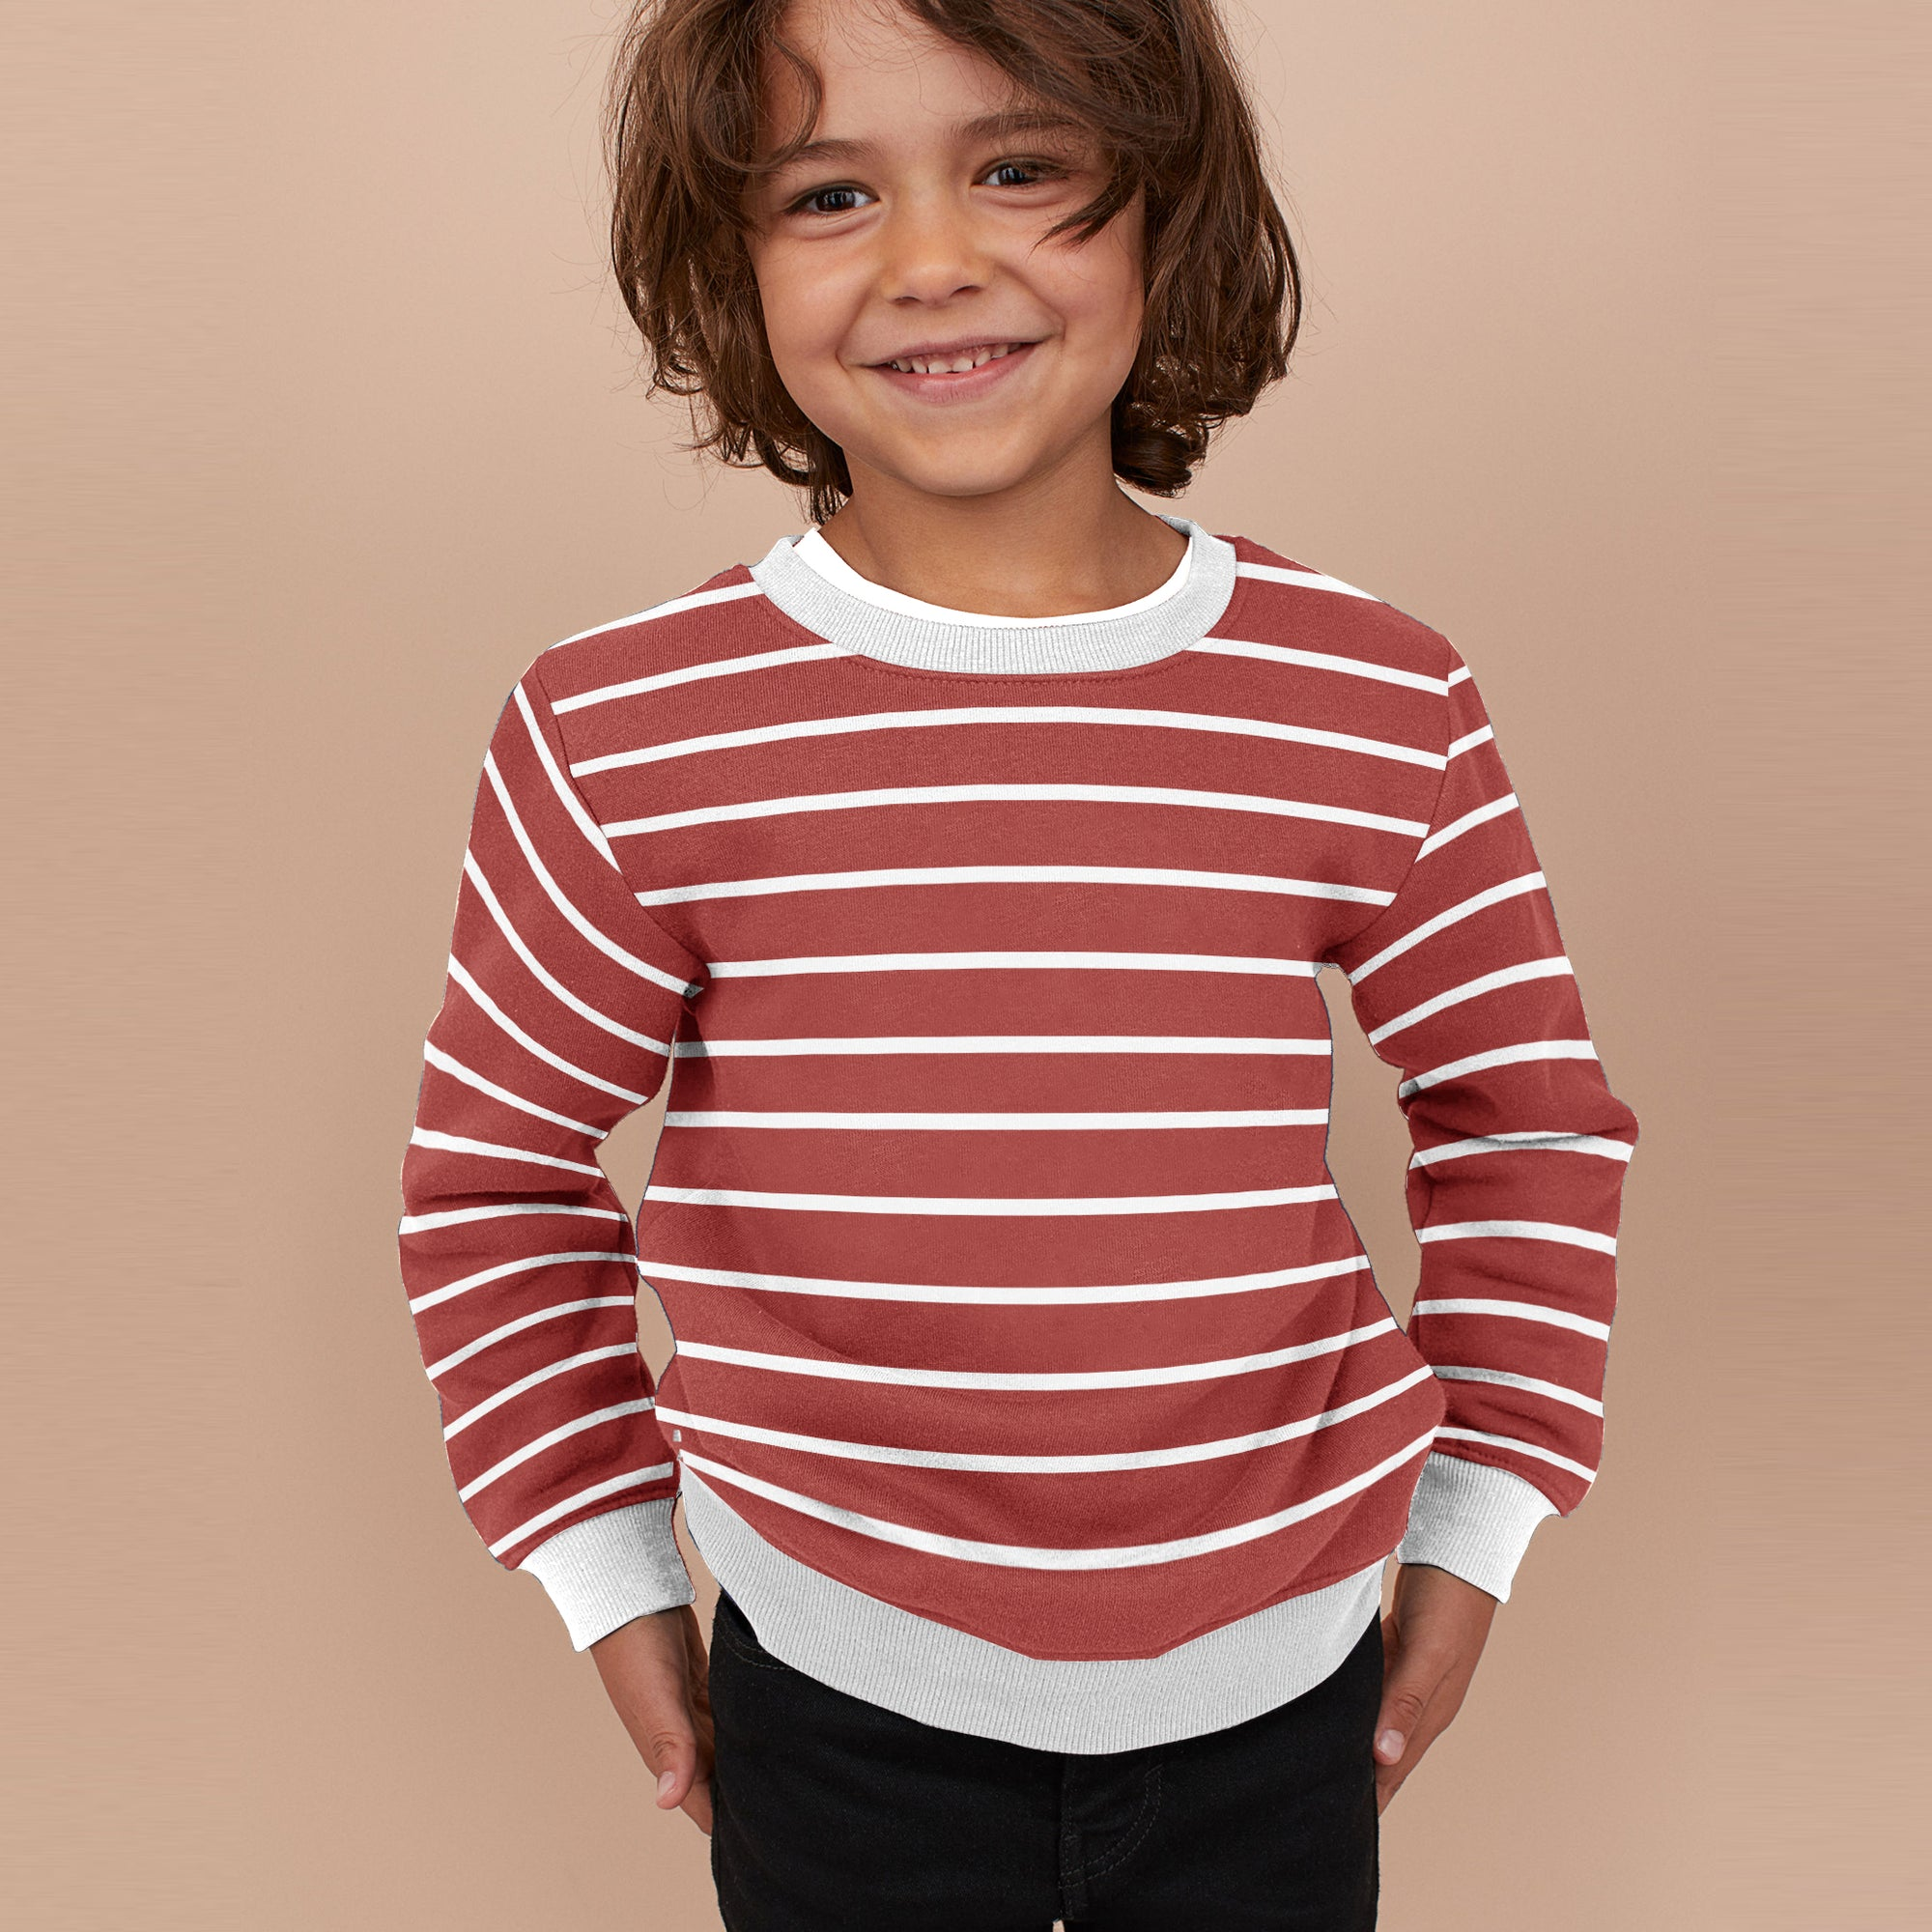 Tommy Hilfiger Terry Fleece Crew Neck Sweatshirt For Kids-Red With Stripes-SP816